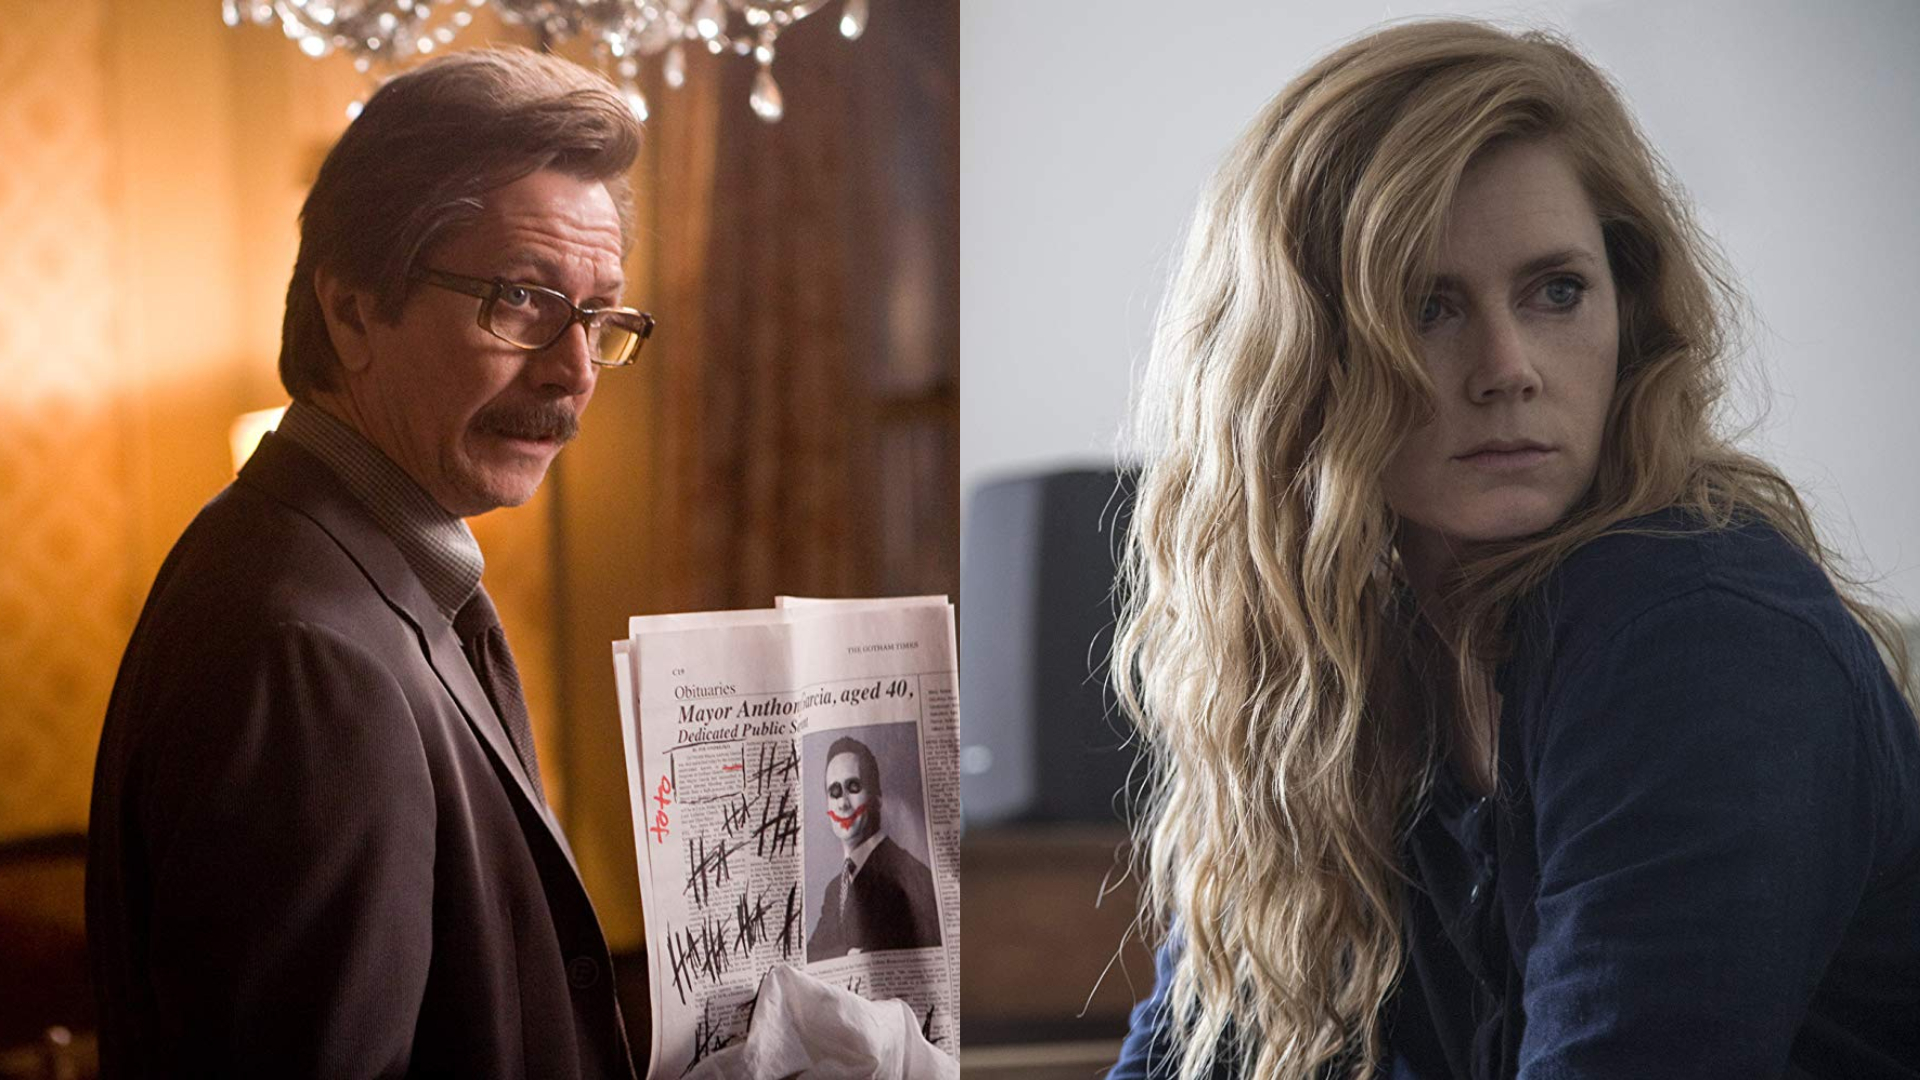 Gary Oldman and Amy Adams Together For 'Woman in the Window'